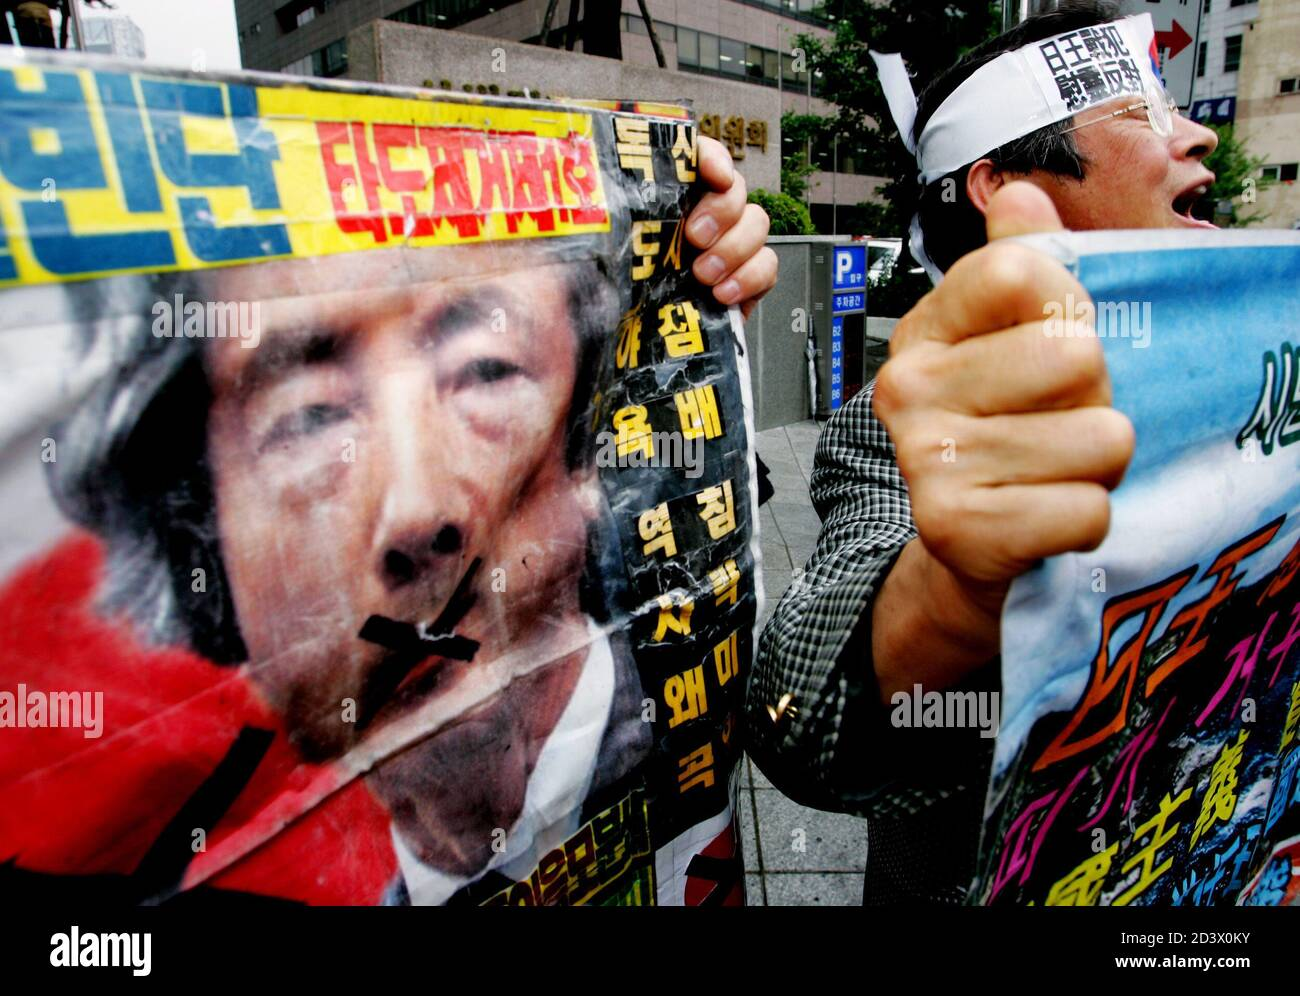 Protester shouts slogans at rally against Japanese Emperor Akihito's journey to pray for war dead in Seoul.  A South Korean protester shouts slogans with an anti-Japan banner featuring the portrait of Japanese Prime Minister Junichiro Koizumi at a rally against Japanese Emperor Akihito's journey to pray for war dead in Saipan, in front of the Japanese embassy in Seoul June 27, 2005. Japanese Emperor Akihito headed for the site of one of World War Two's most decisive battles on Monday to pay tribute to those who died in a conflict that still haunts Tokyo's ties with Asian neighbours, 60 years a Stock Photo